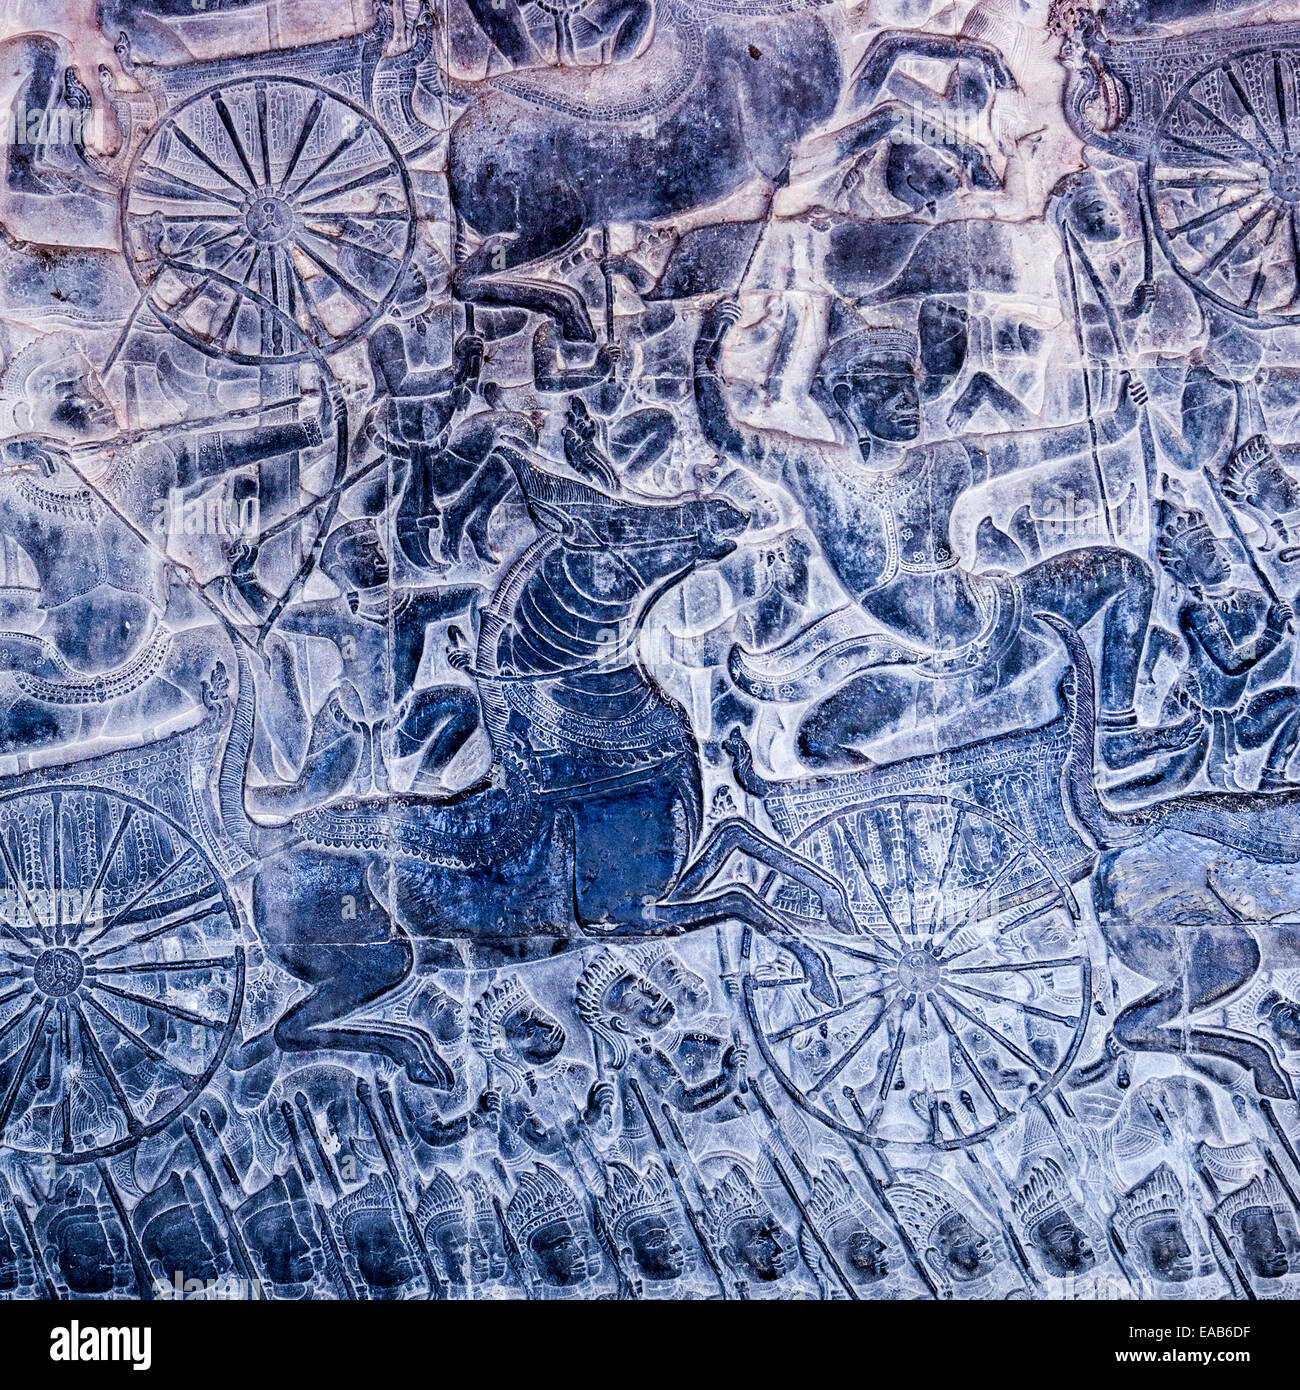 Cambodia, Angkor Wat.  Detail of Bas-relief Showing the Kaurava Army Advancing into the Battle of Kurukshetra. Stock Photo